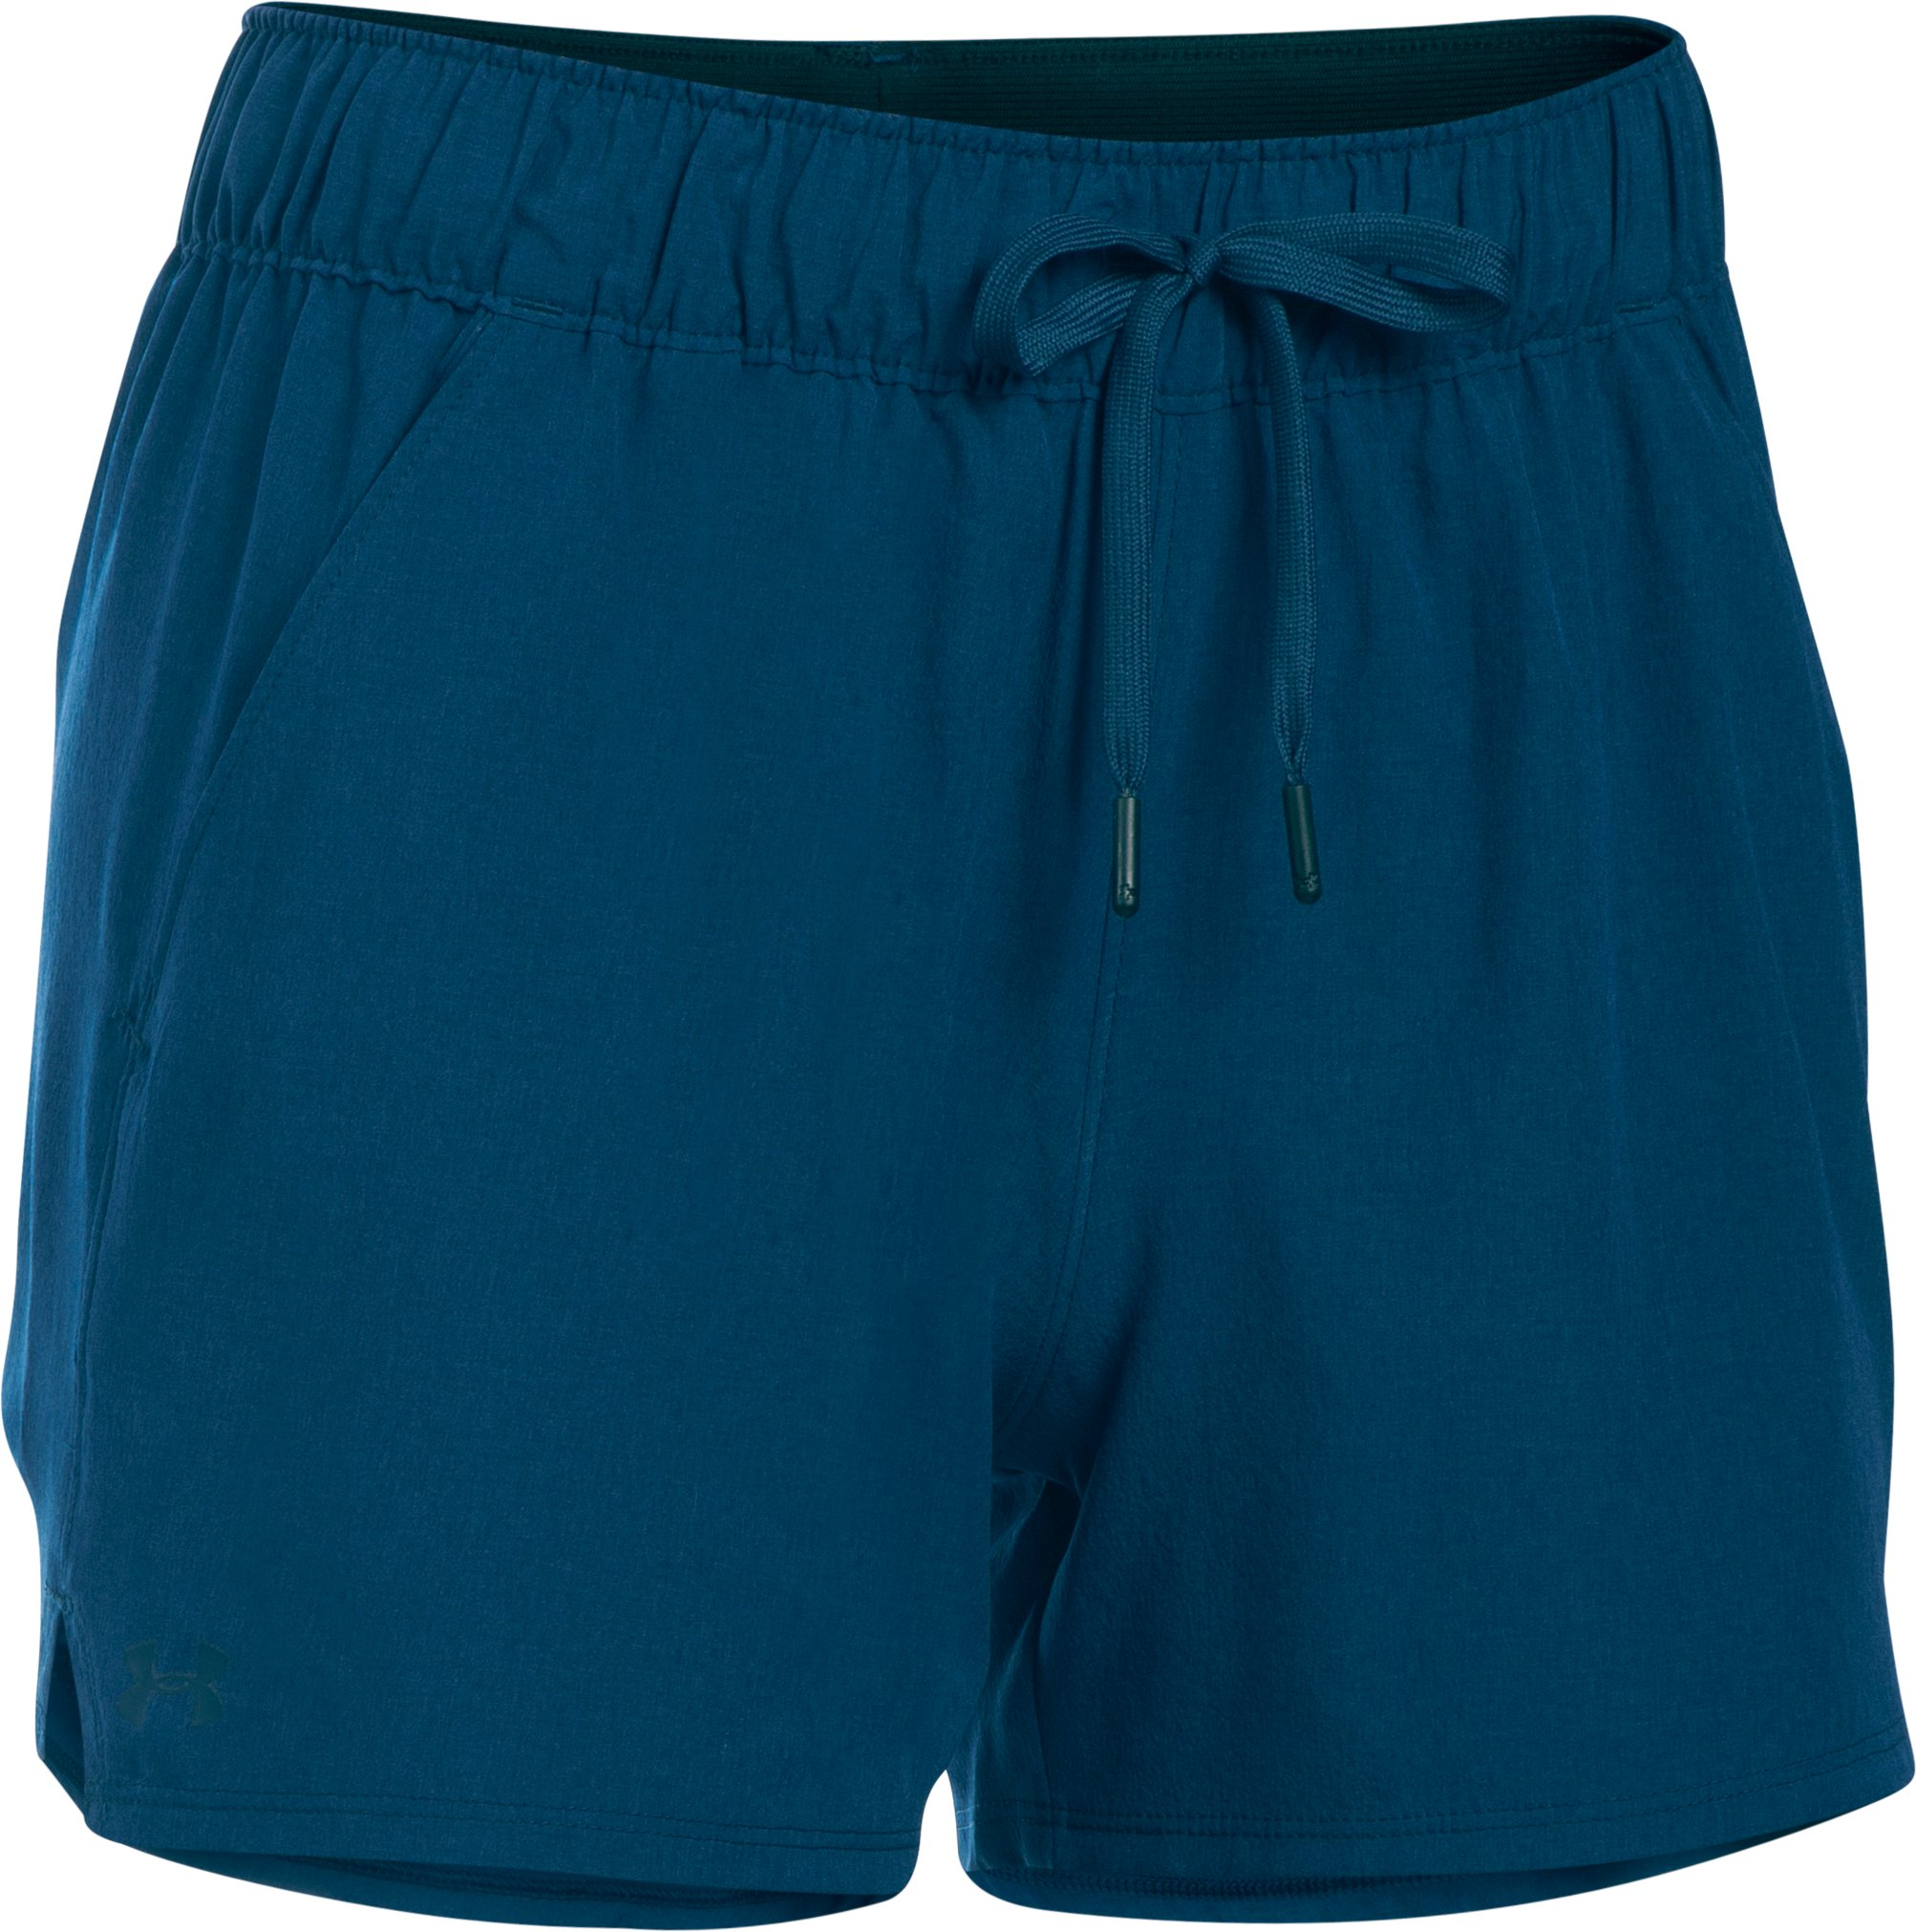 Women's UA Do Anything Shorts, BLACKOUT NAVY, undefined